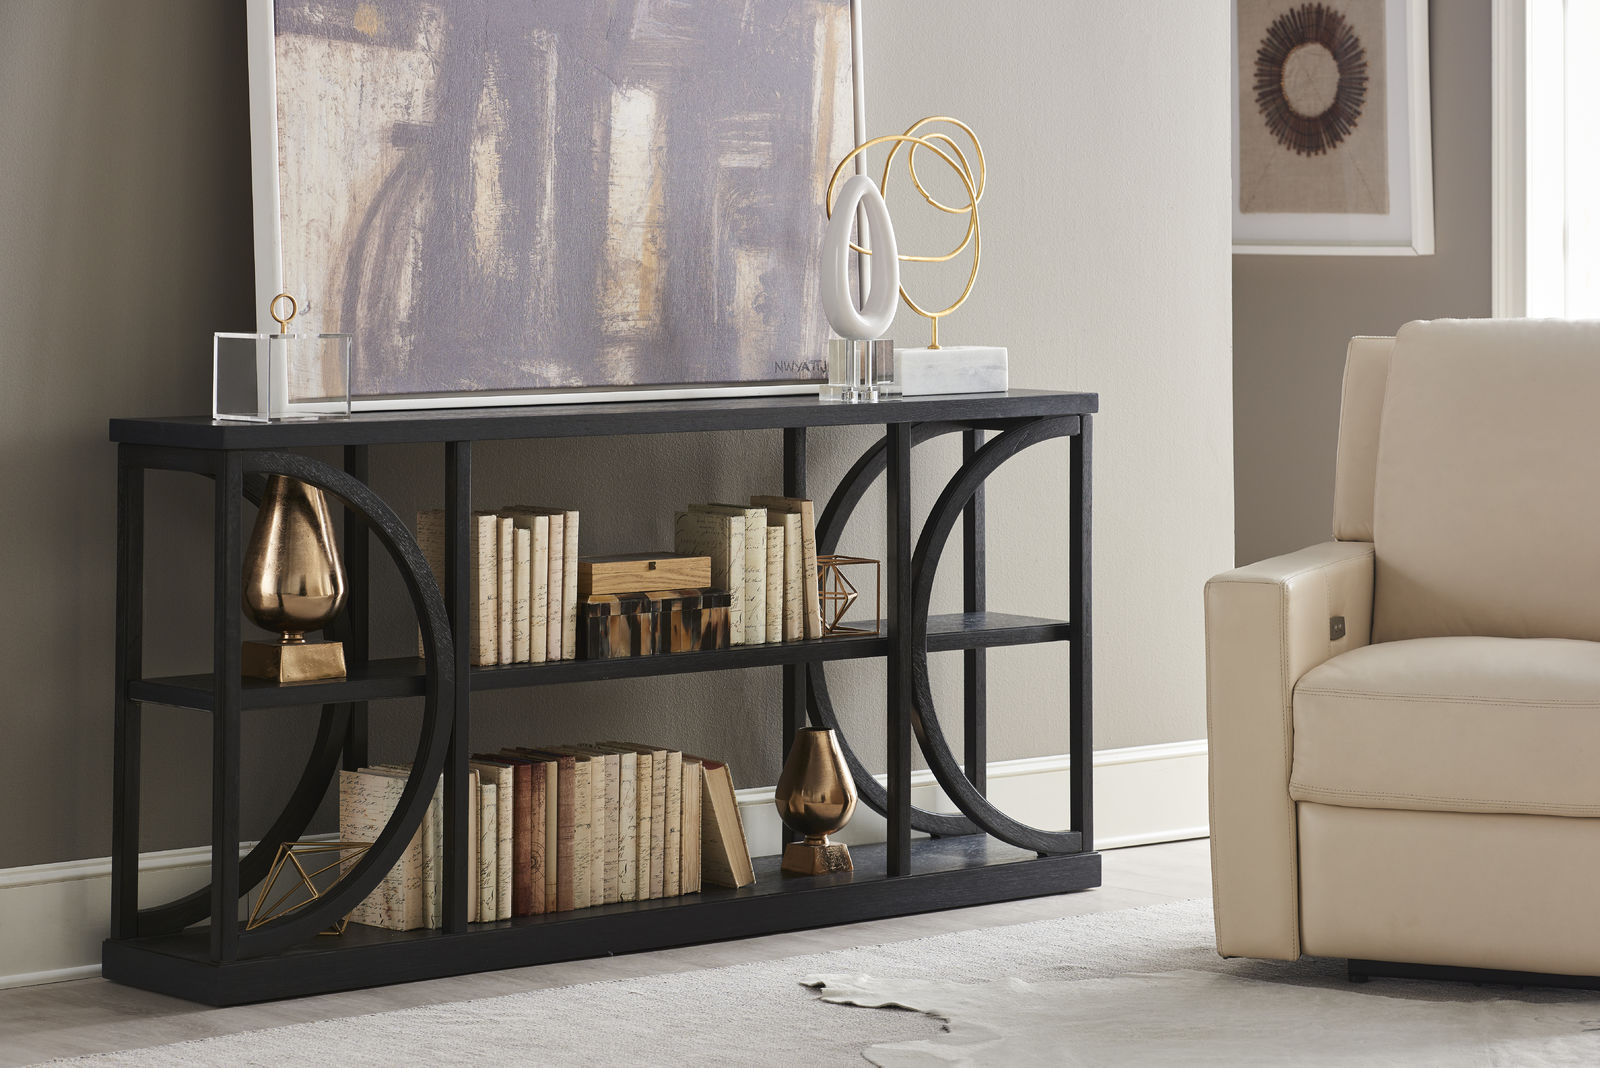 Black console table with books stored inside it and a piece of art resting on top of it